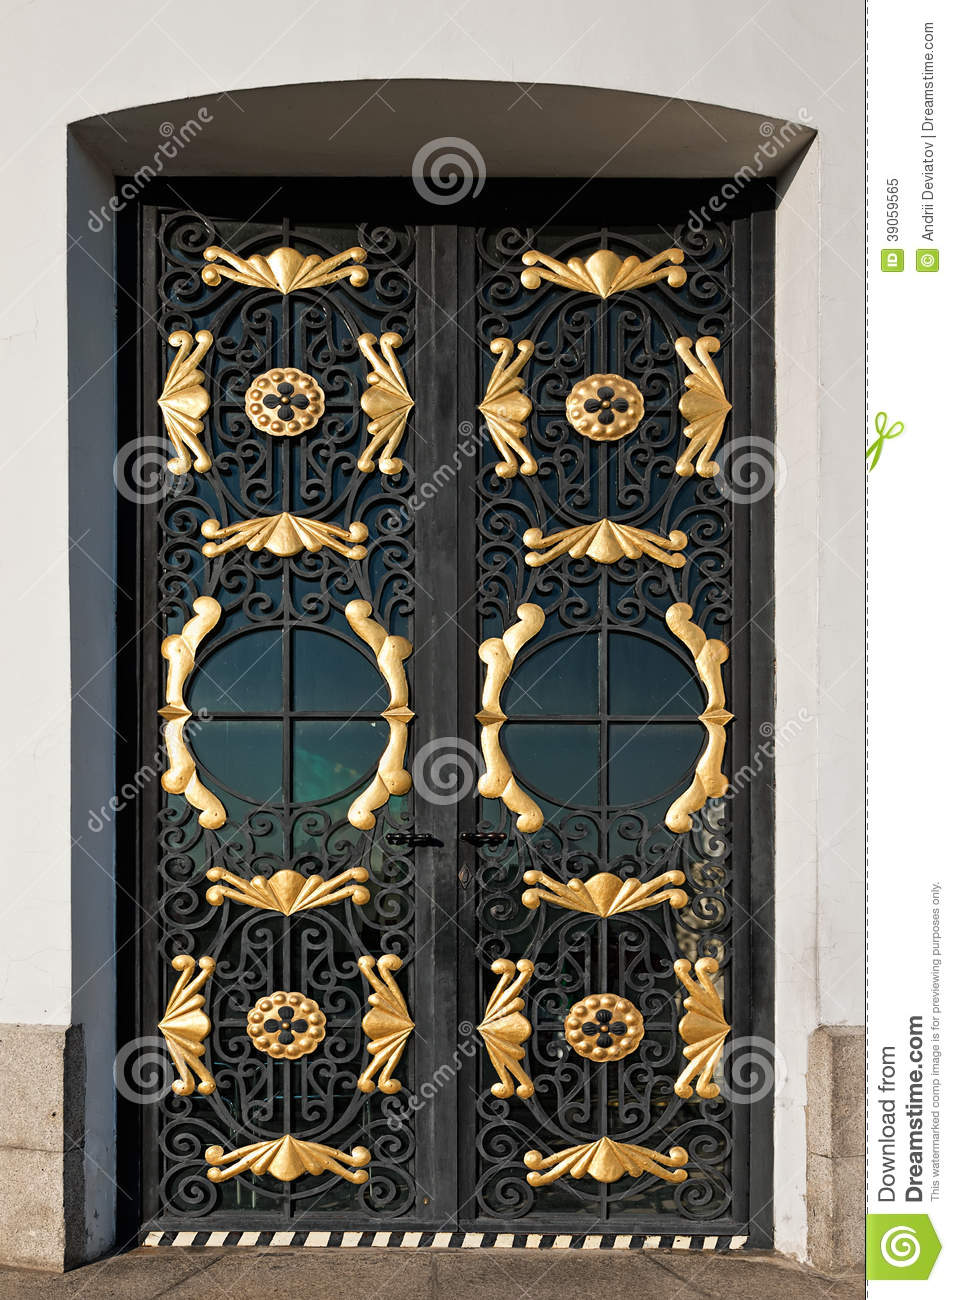 Decorative Metal Entry Doors : Closed metal door with decorative grille stock image